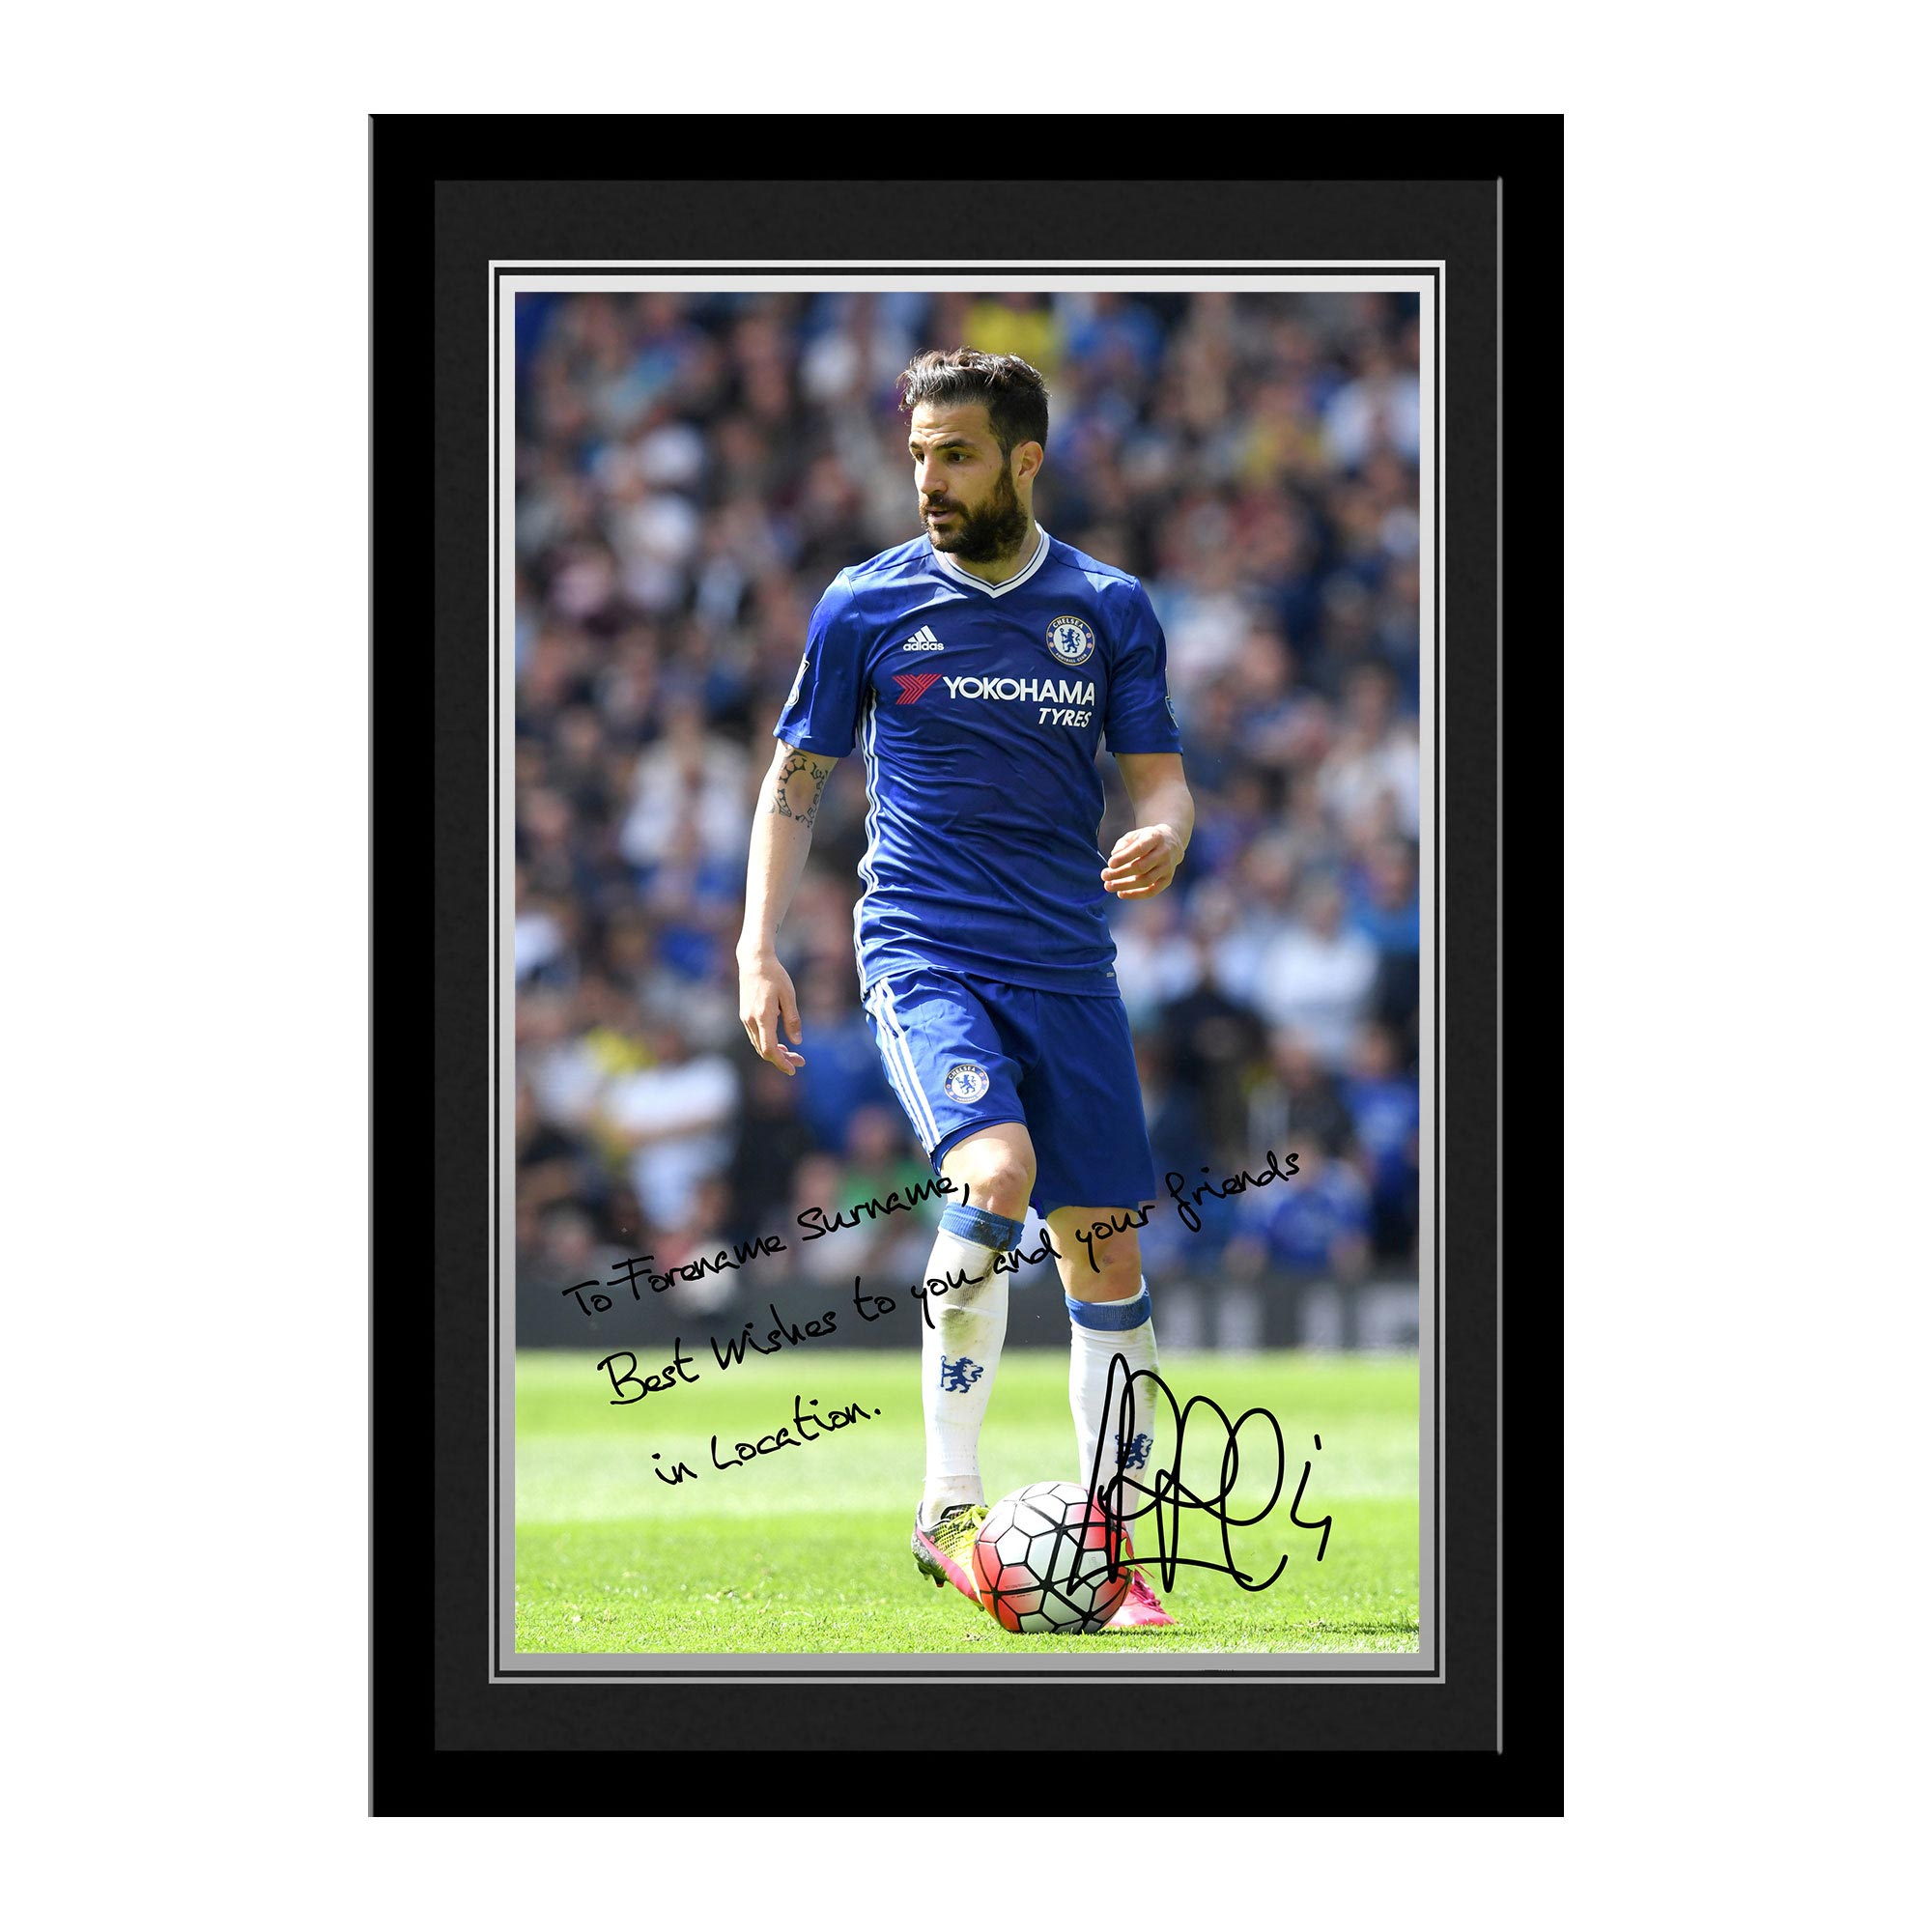 Chelsea Personalised Signature Photo Framed - Fabregas